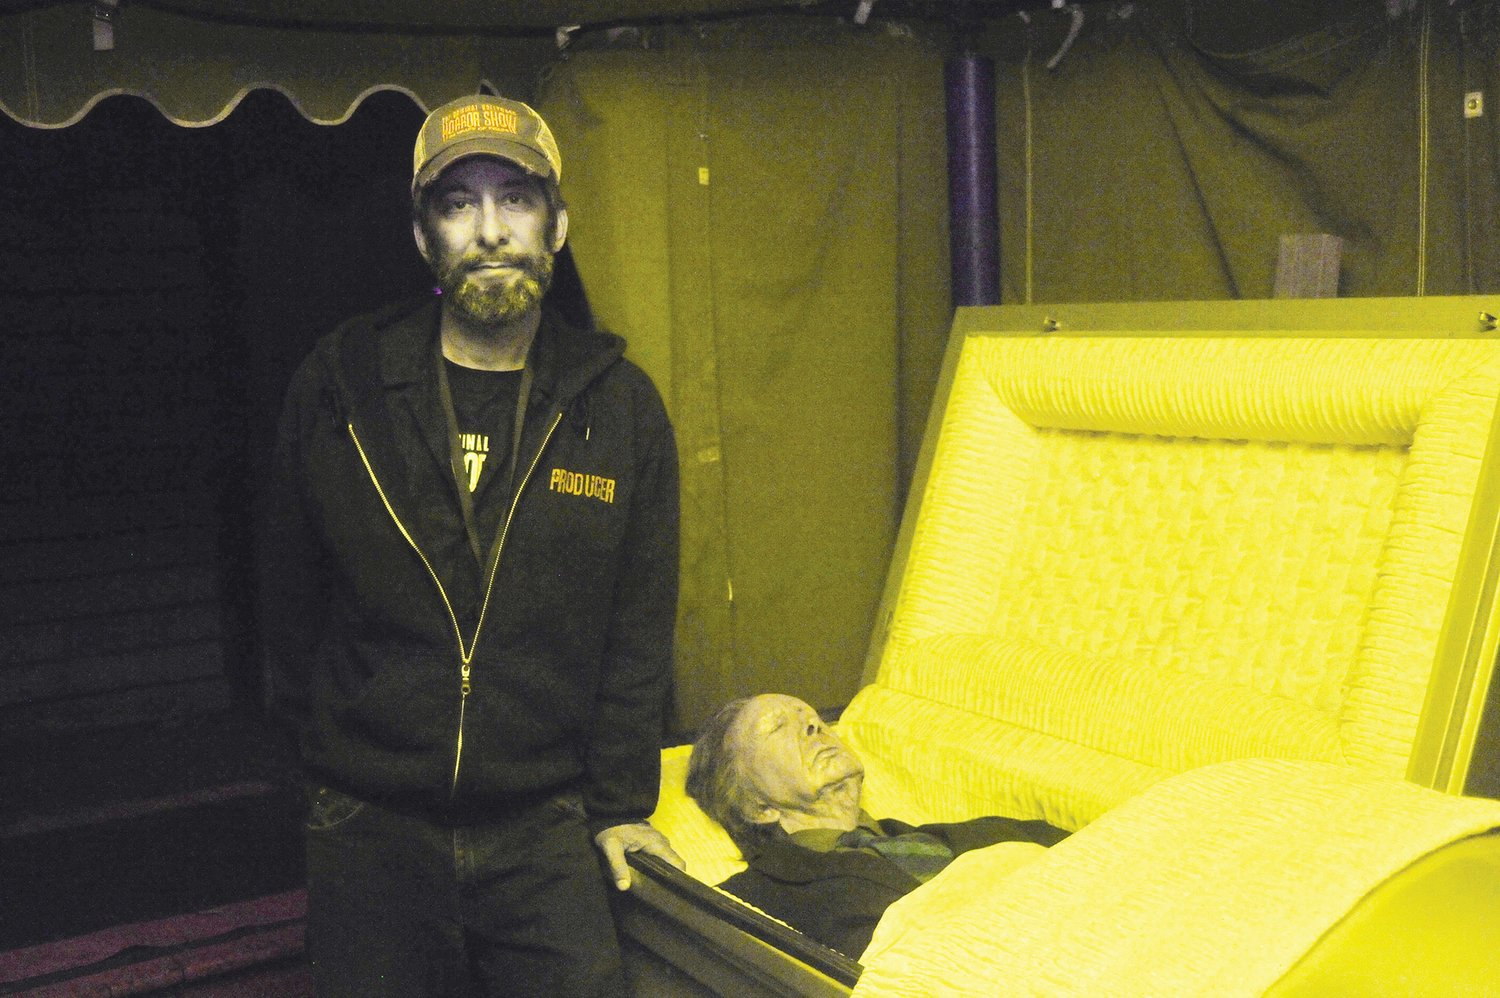 Professional movie make-up artist Starr Jones, co-creator of The Original Hollywood Horror Show in Snow Camp, stands next to a coffin whose occupant (a prop) wears the last life mask of the late actor Vincent Price.